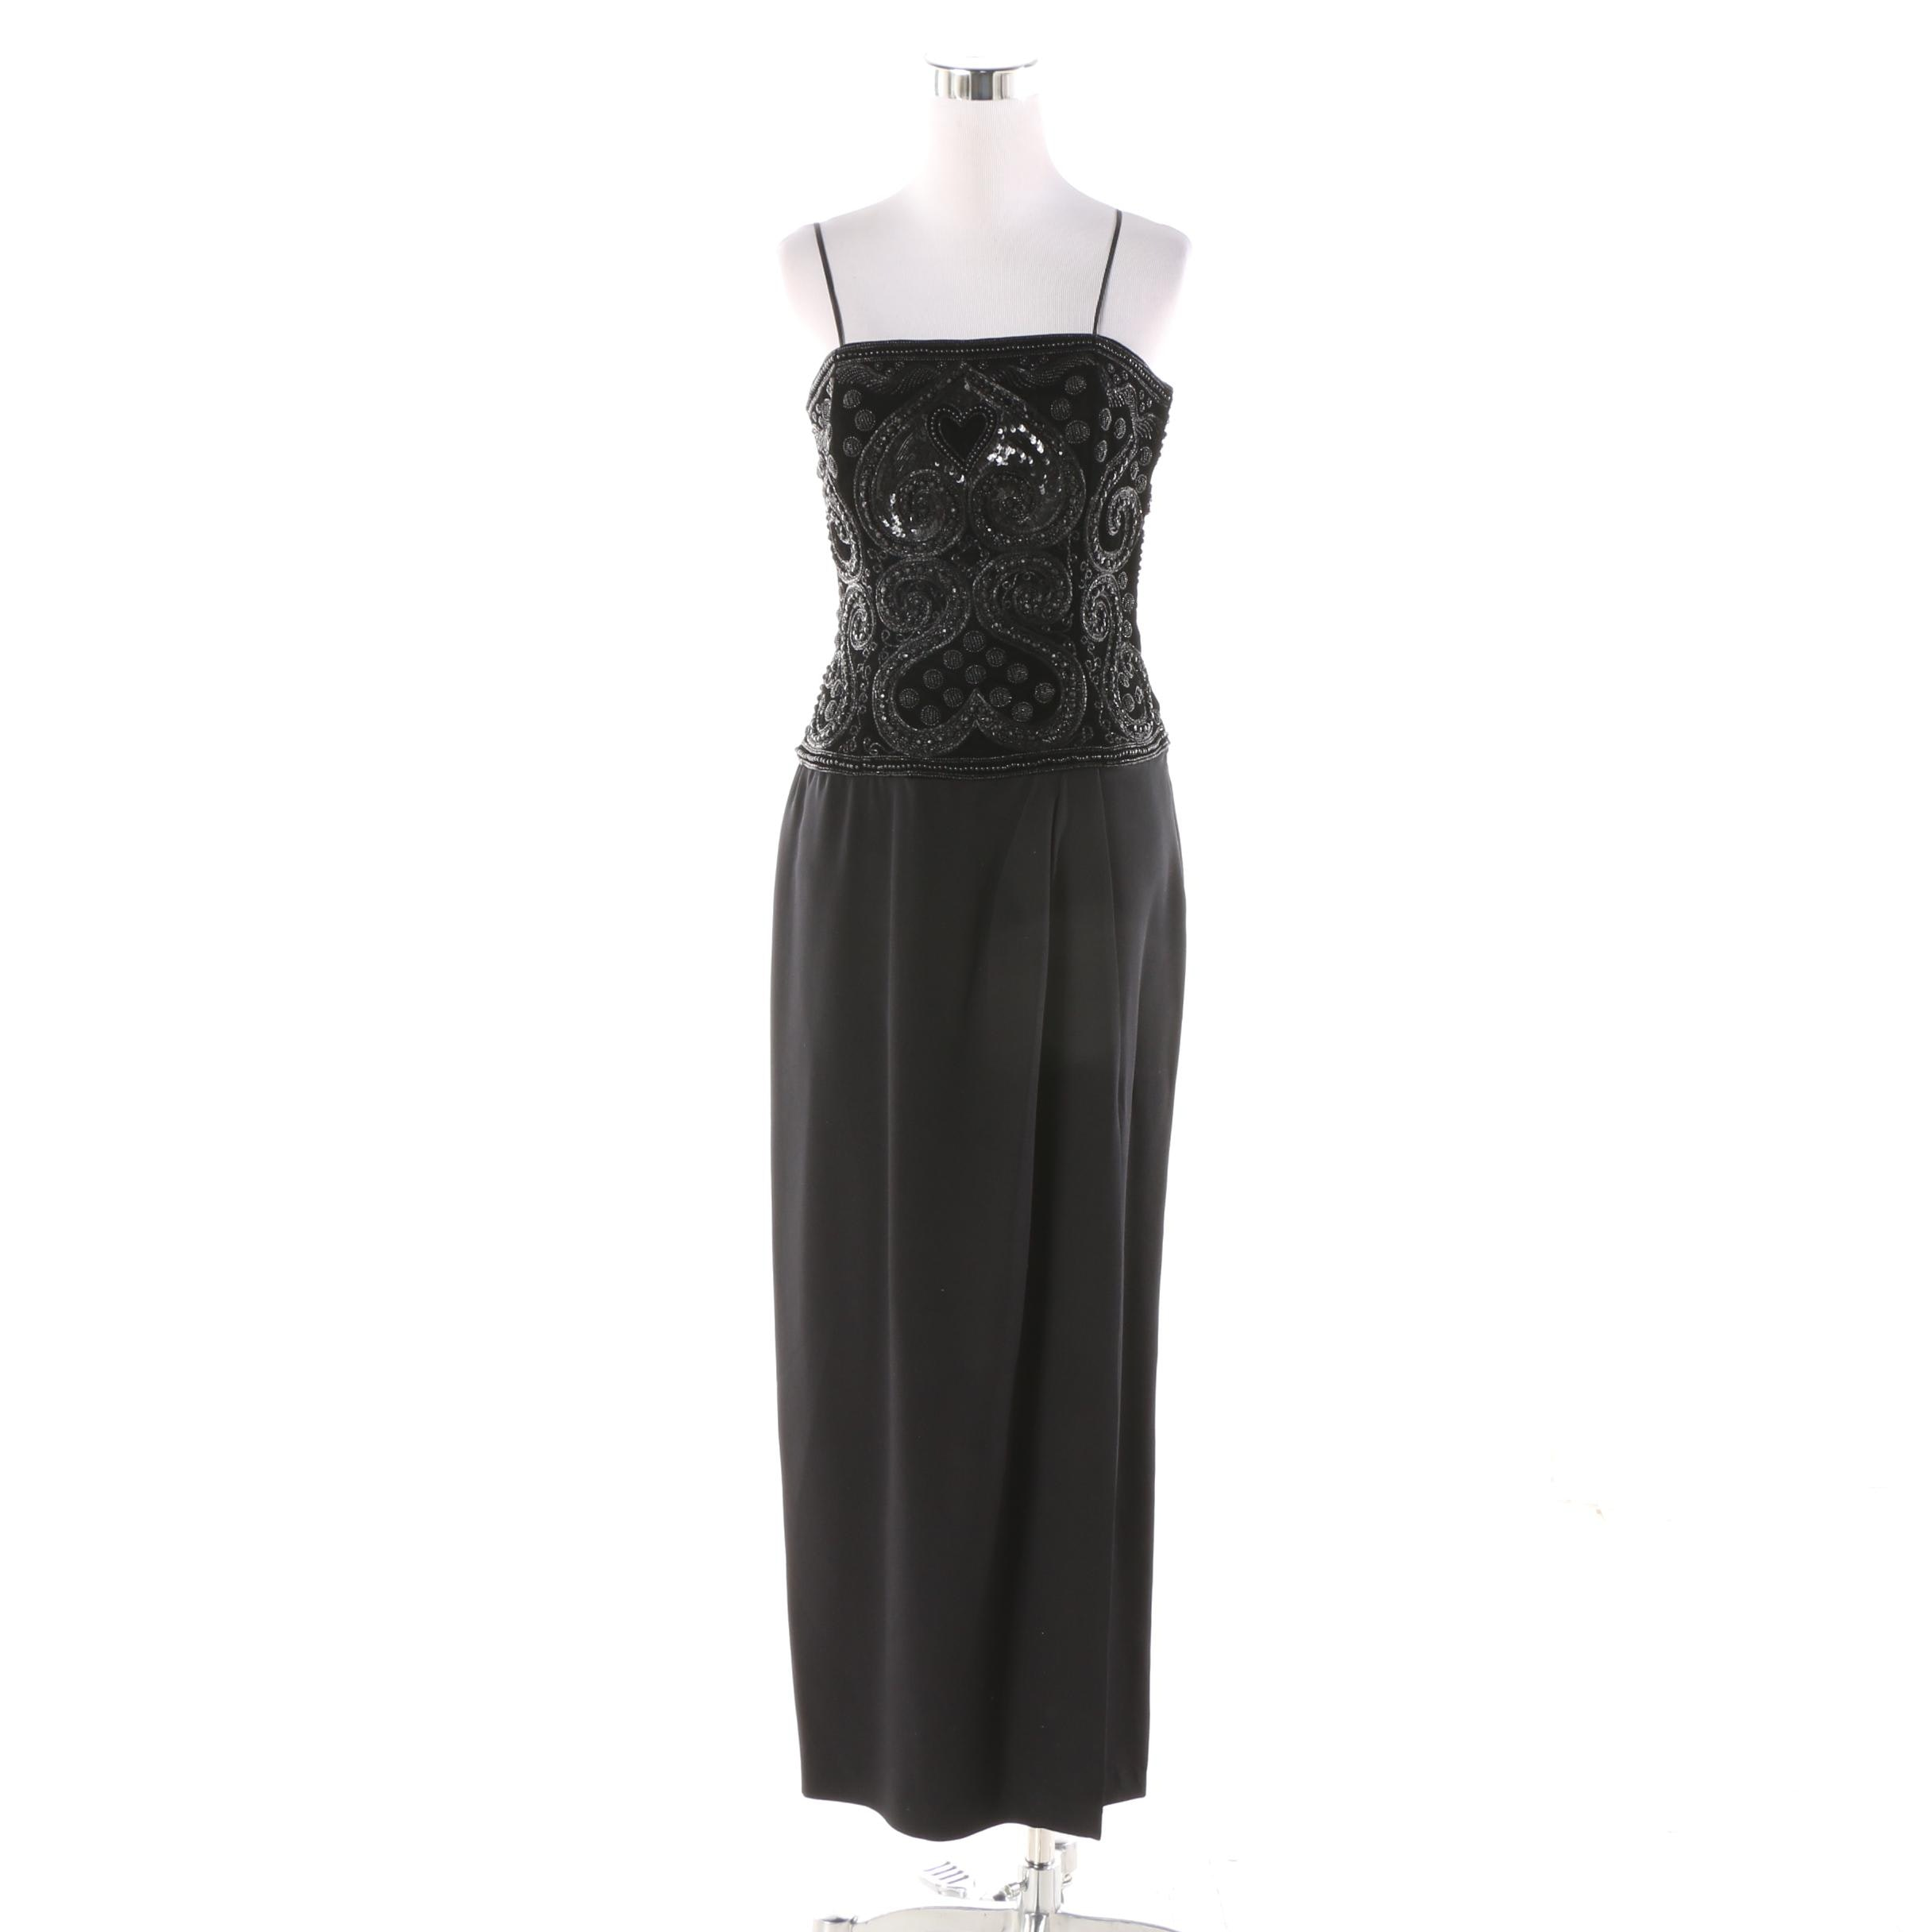 Escada Couture Black Evening Dress with Heart-Embellished Bodice